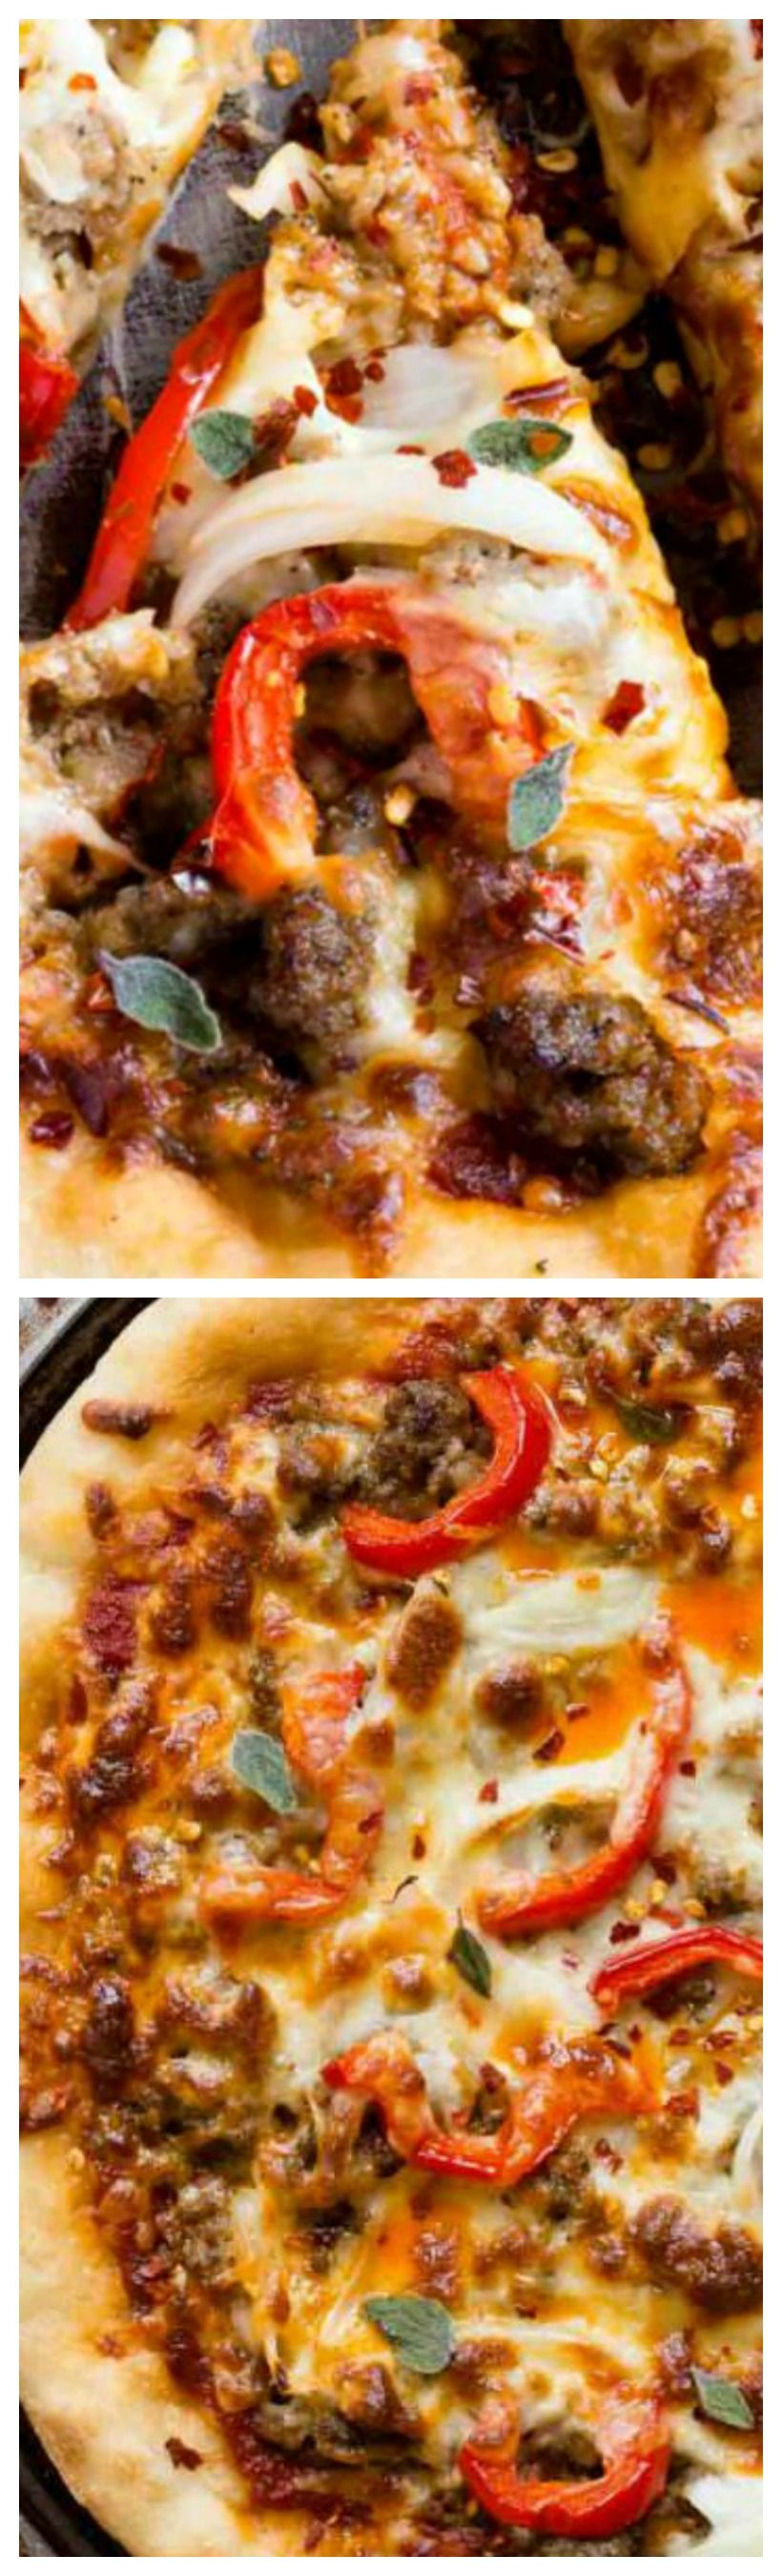 Spicy Sausage Pizza ~ The pizza is good and ready in just 15 minutes... It's super simple to make and will please your spicy food loving friends and family.